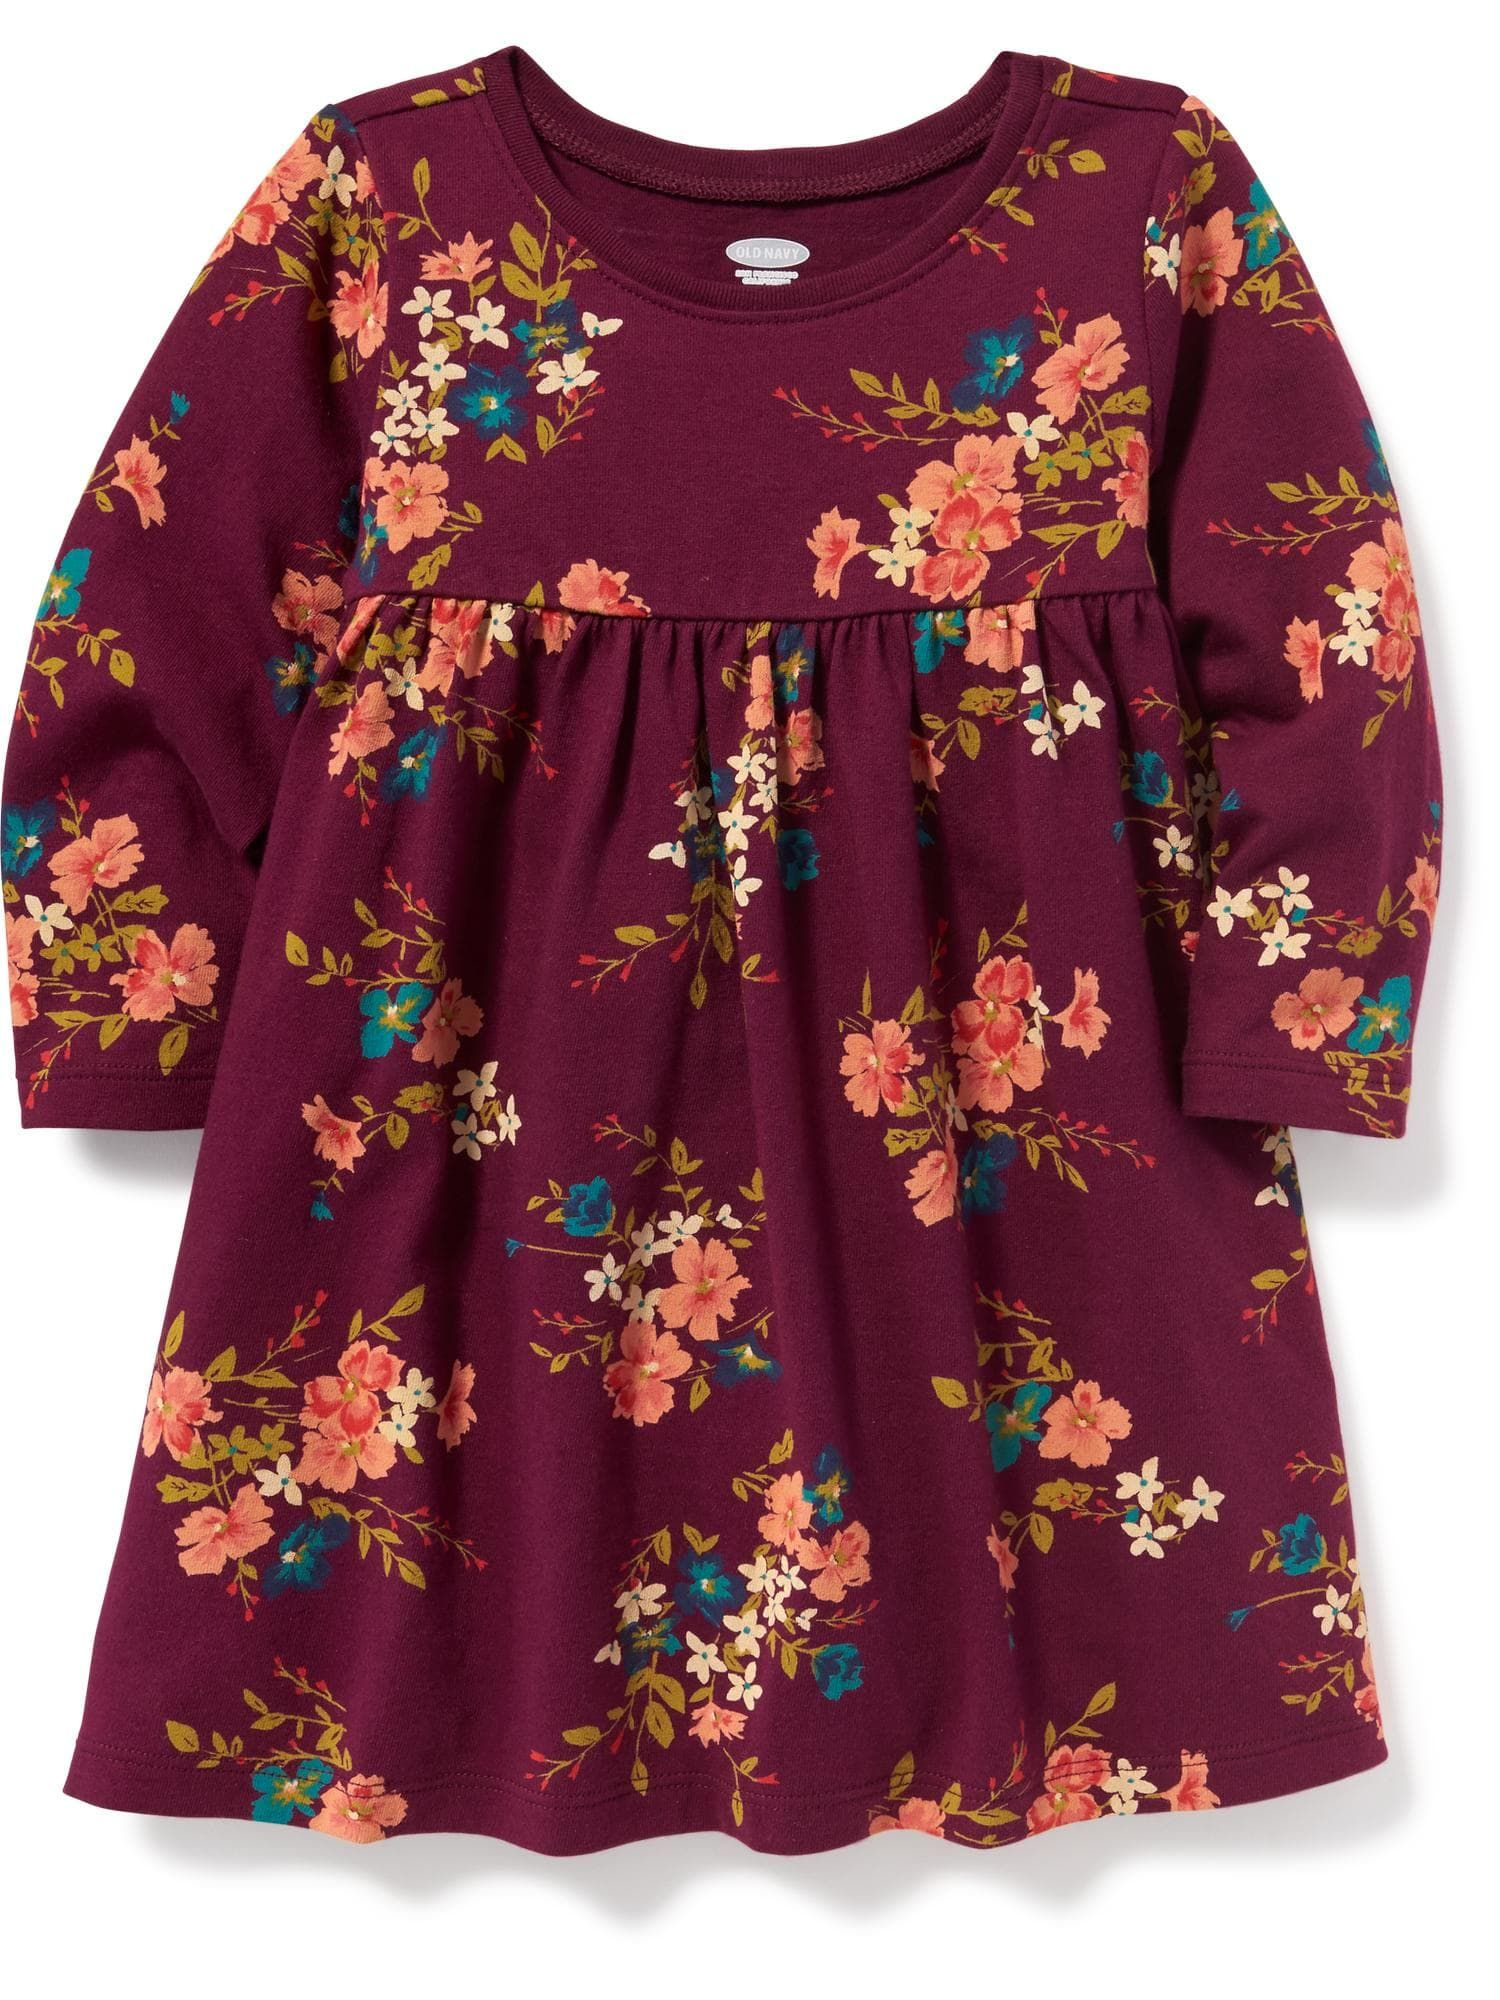 Old navy baby girl fall dress